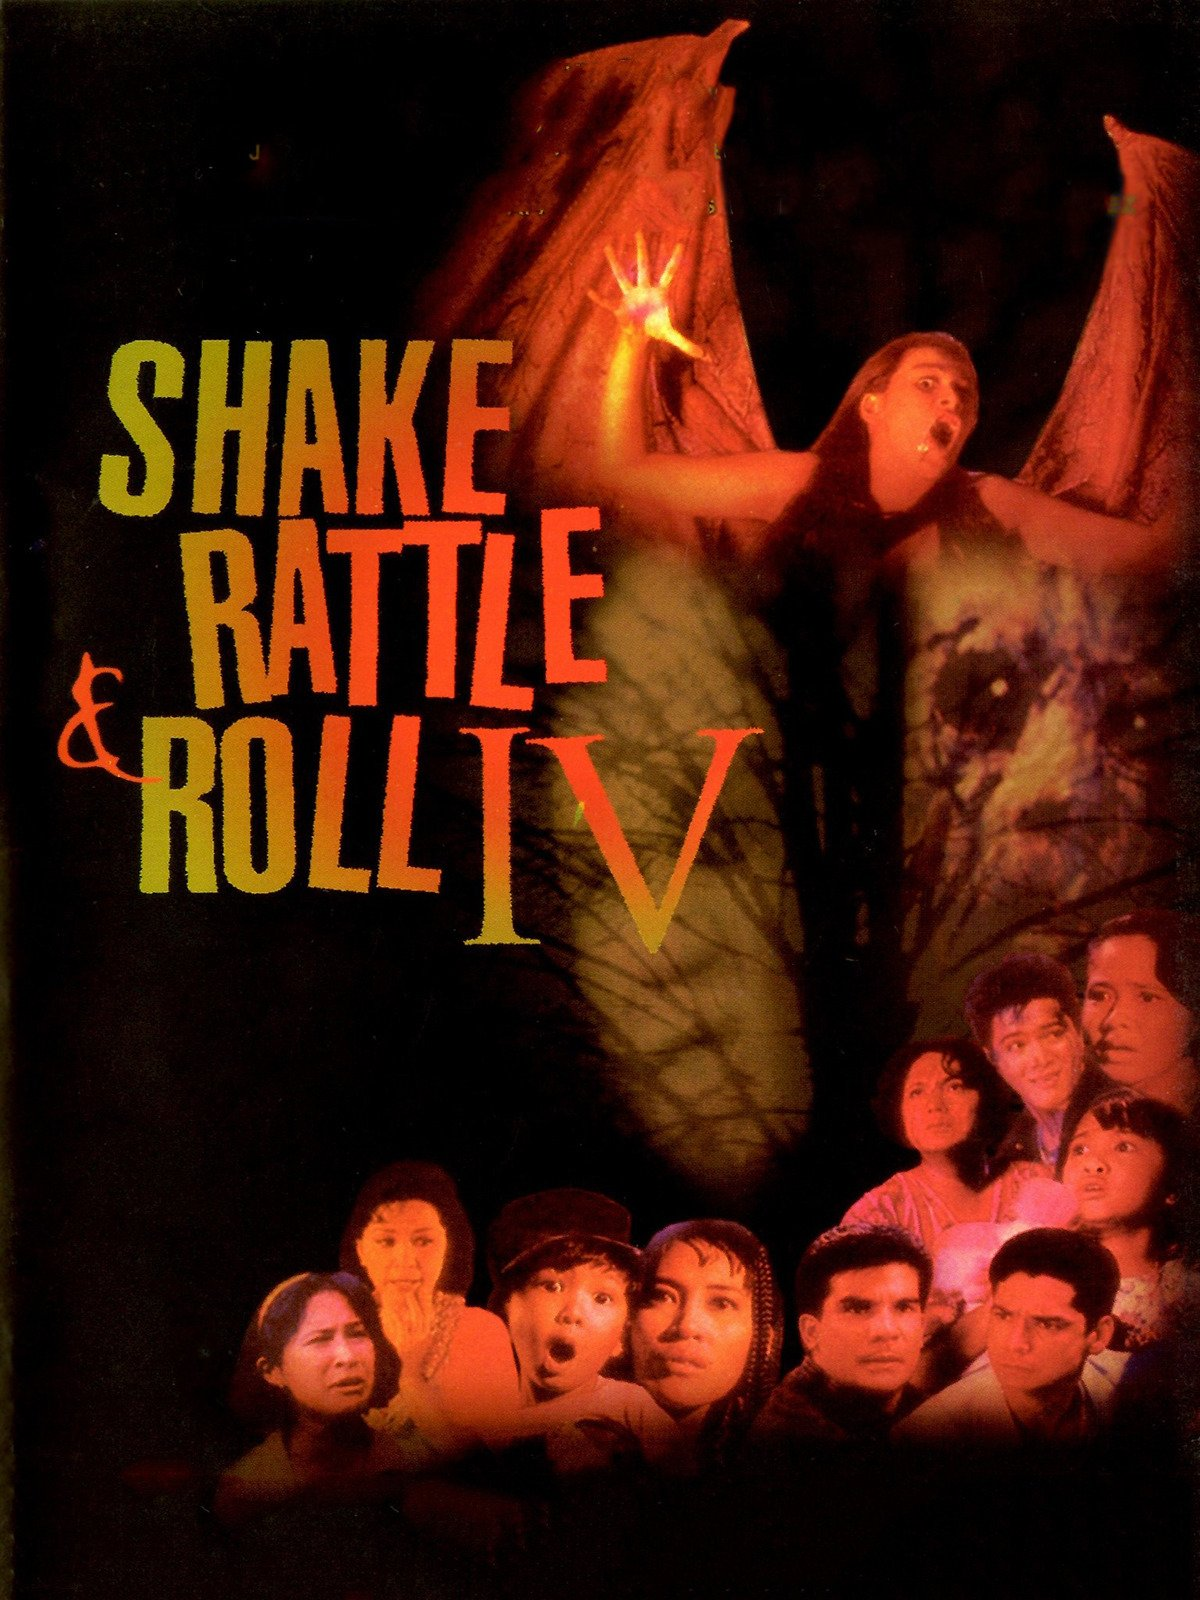 Shake Rattle & Roll IV